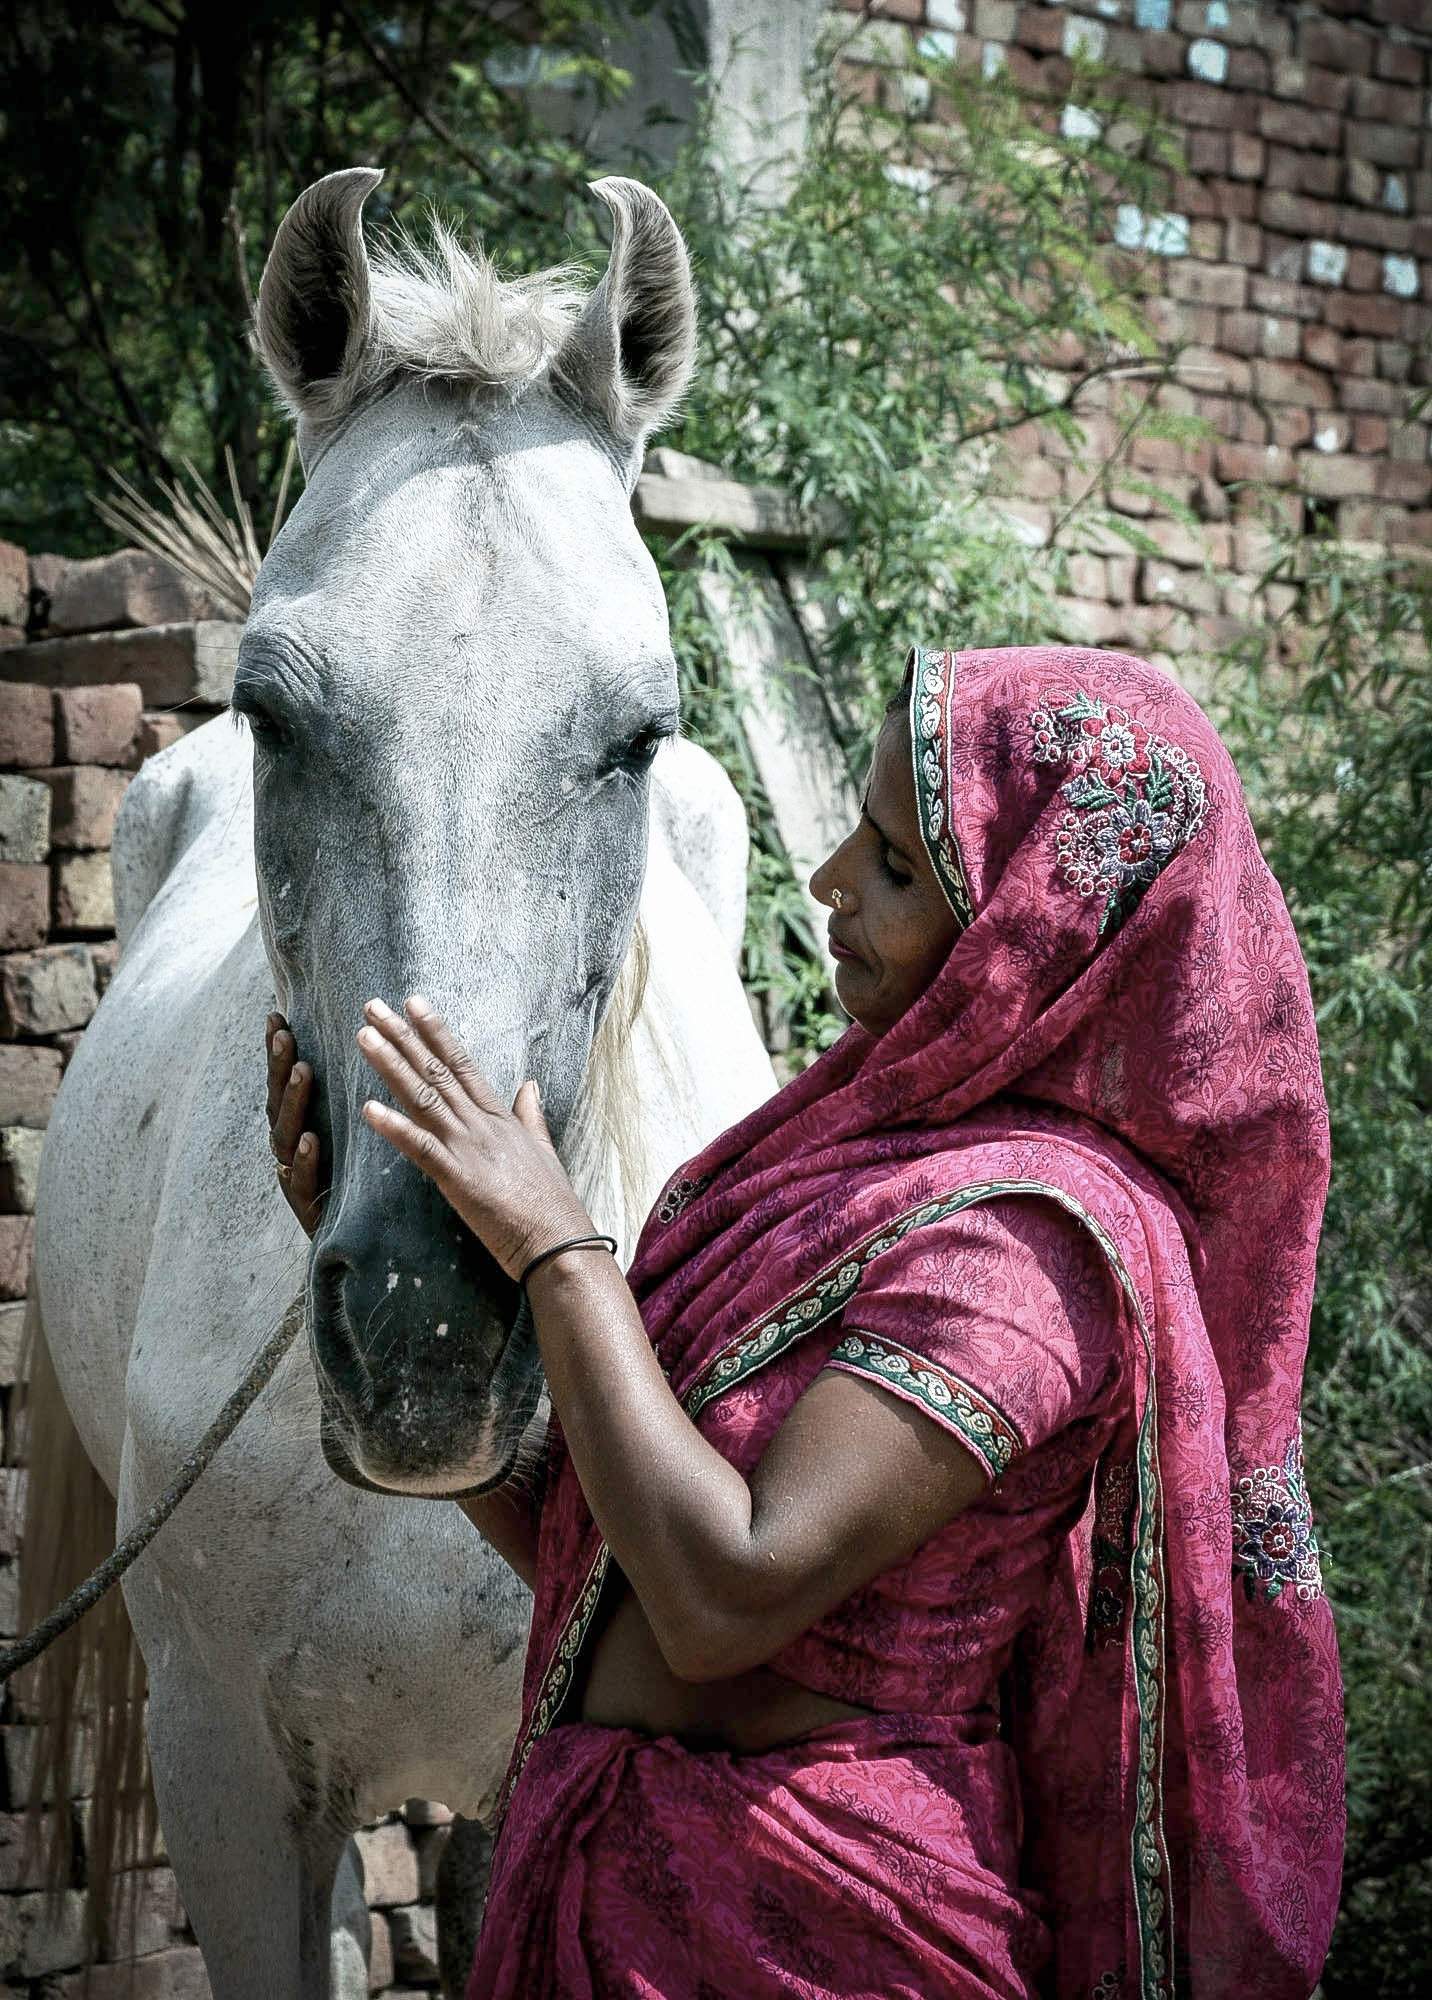 Horse and woman in India.jpg